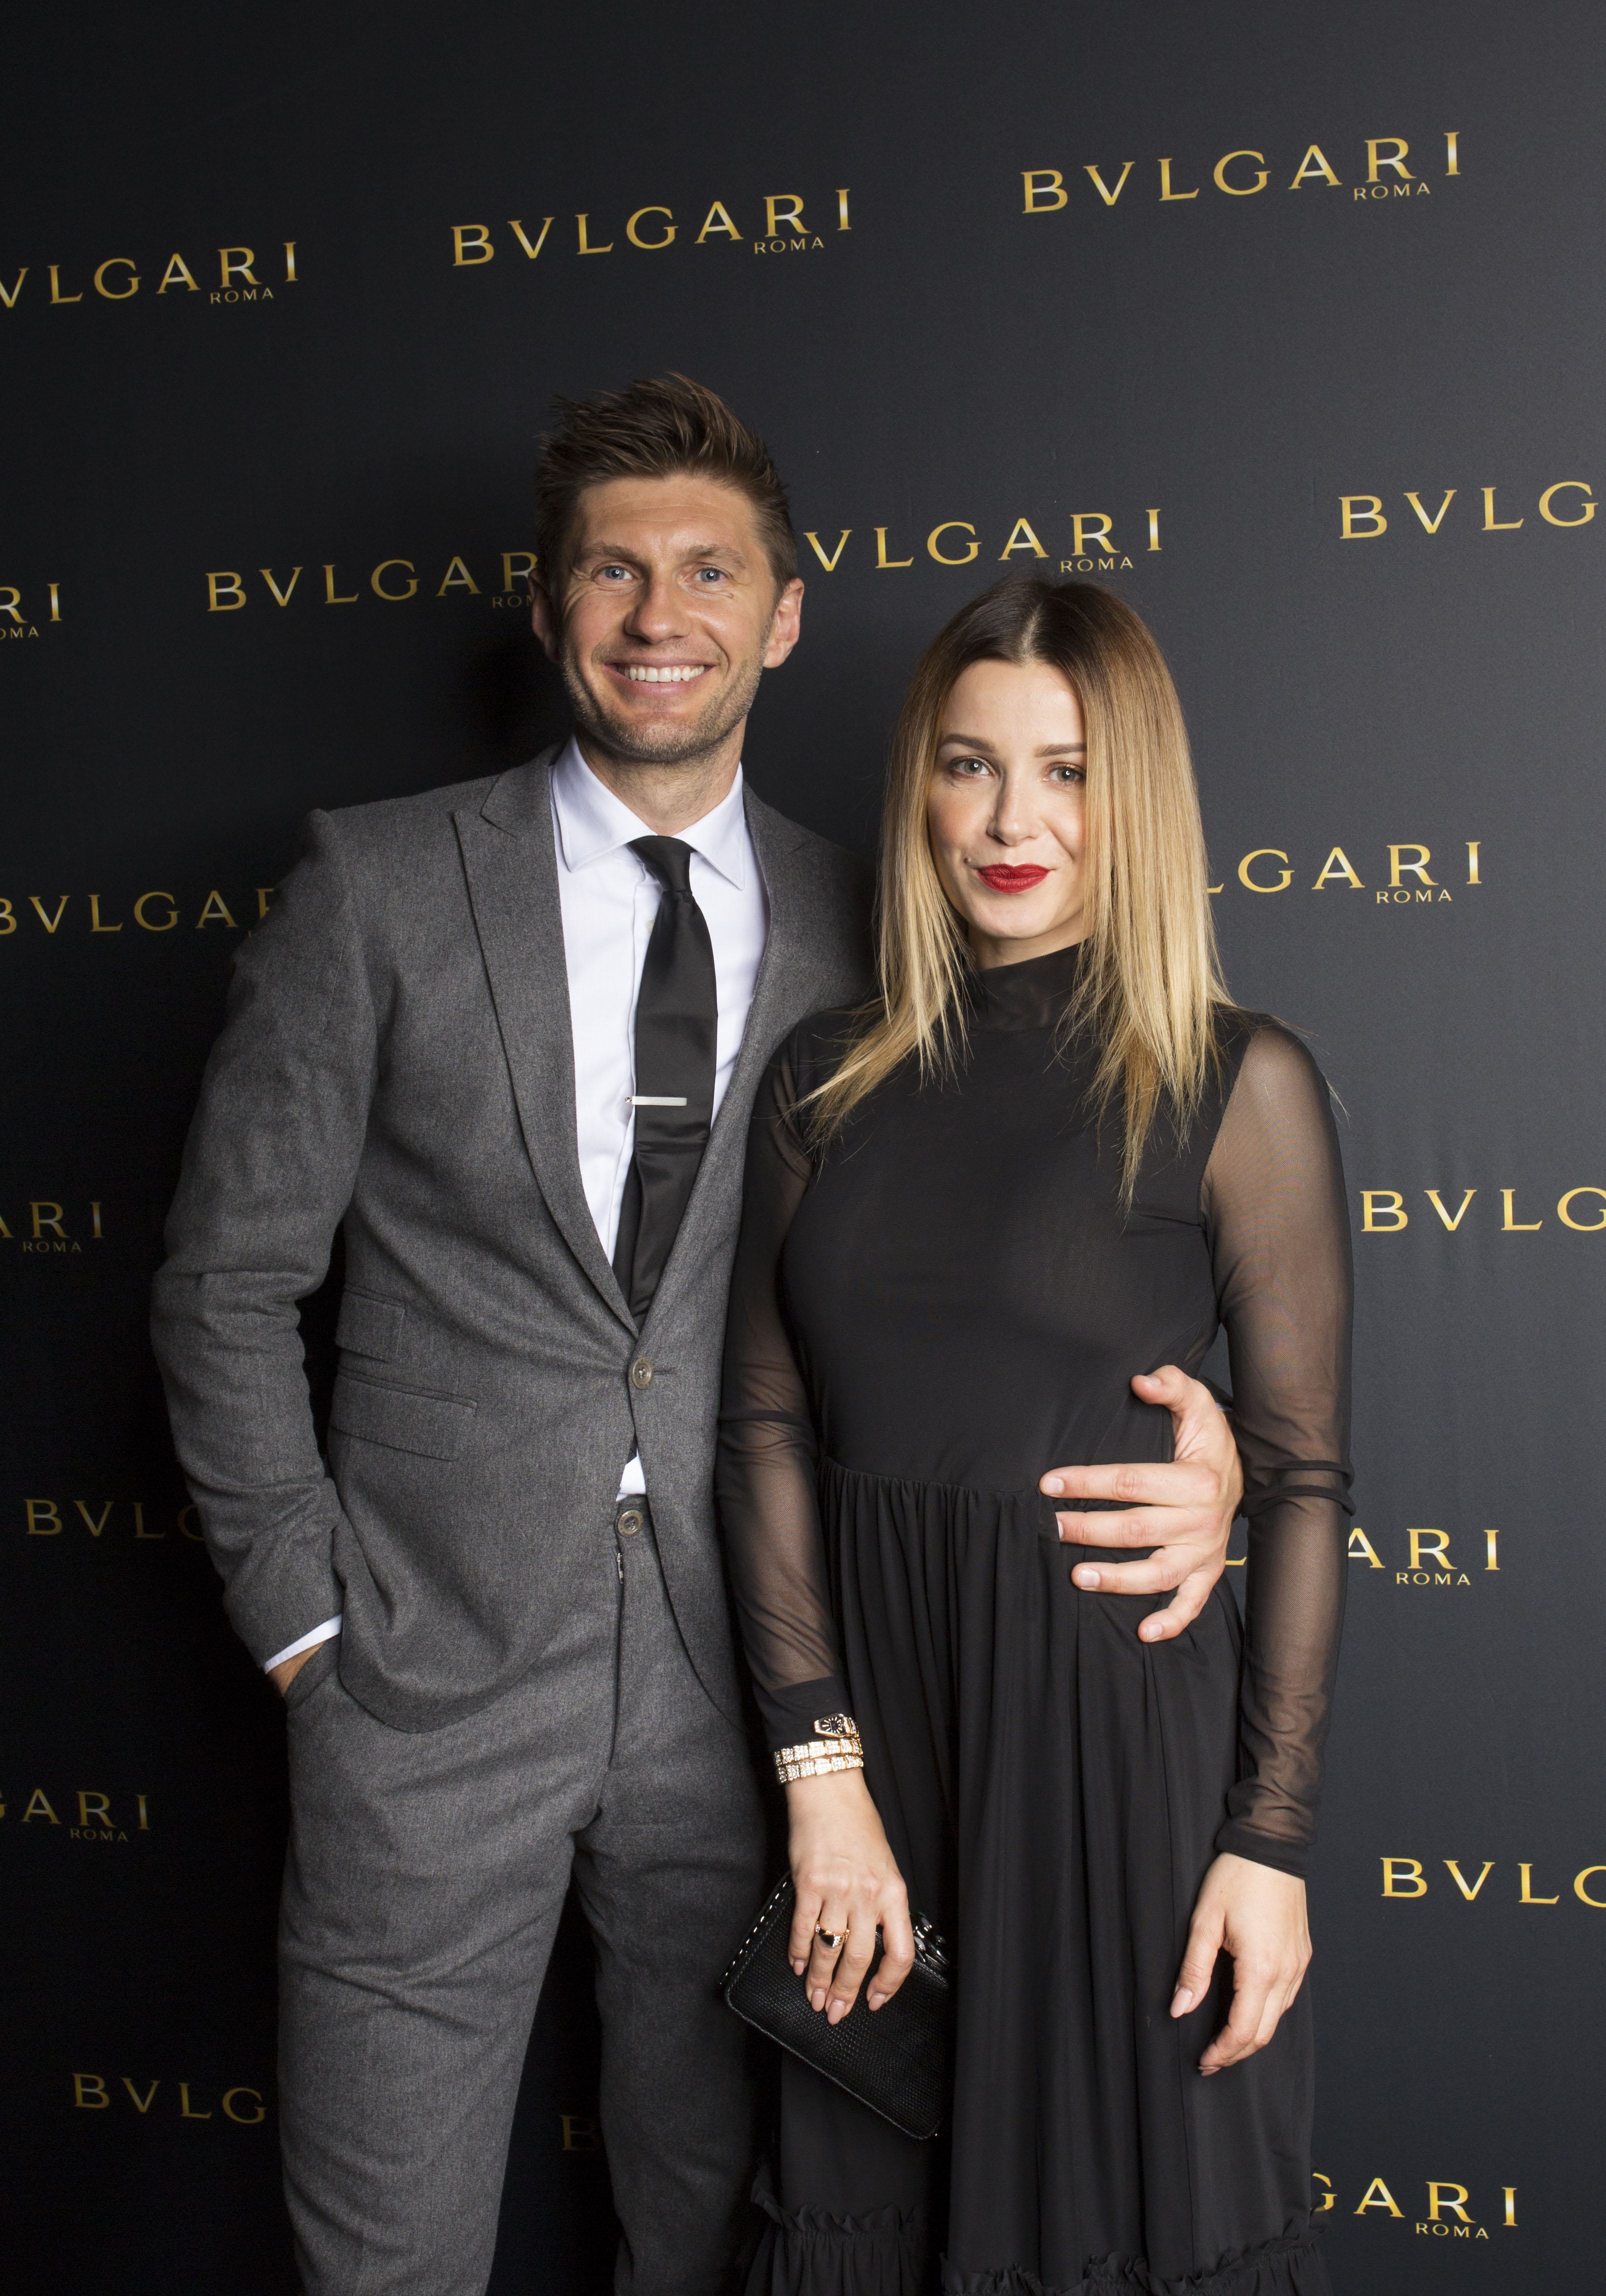 AMSTERDAM, NETHERLANDS - NOVEMBER 2: Evgeniy Levchenko and Victoria Koblenko attend Bulgari facilitating homecoming of long lost van Gogh masterpieces at the Van Gogh Museum on November 2, 2017 in Amsterdam Netherlands. (Photo by Serge Ligtenberg/Getty Images for Bulgari) *** Local Caption *** Evgeniy Levchenko; Victoria Koblenko